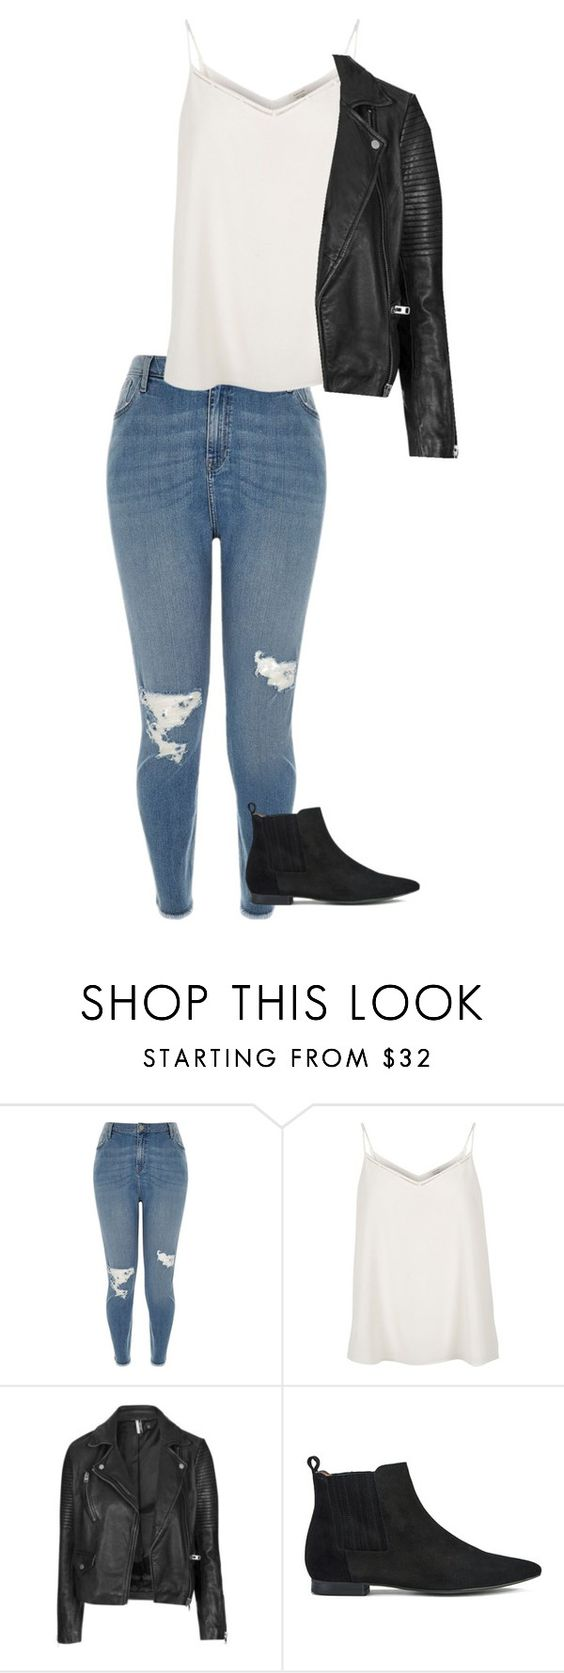 """Untitled #150"" by whatacatchaly ❤ liked on Polyvore featuring River Island, Topshop and H by Hudson"